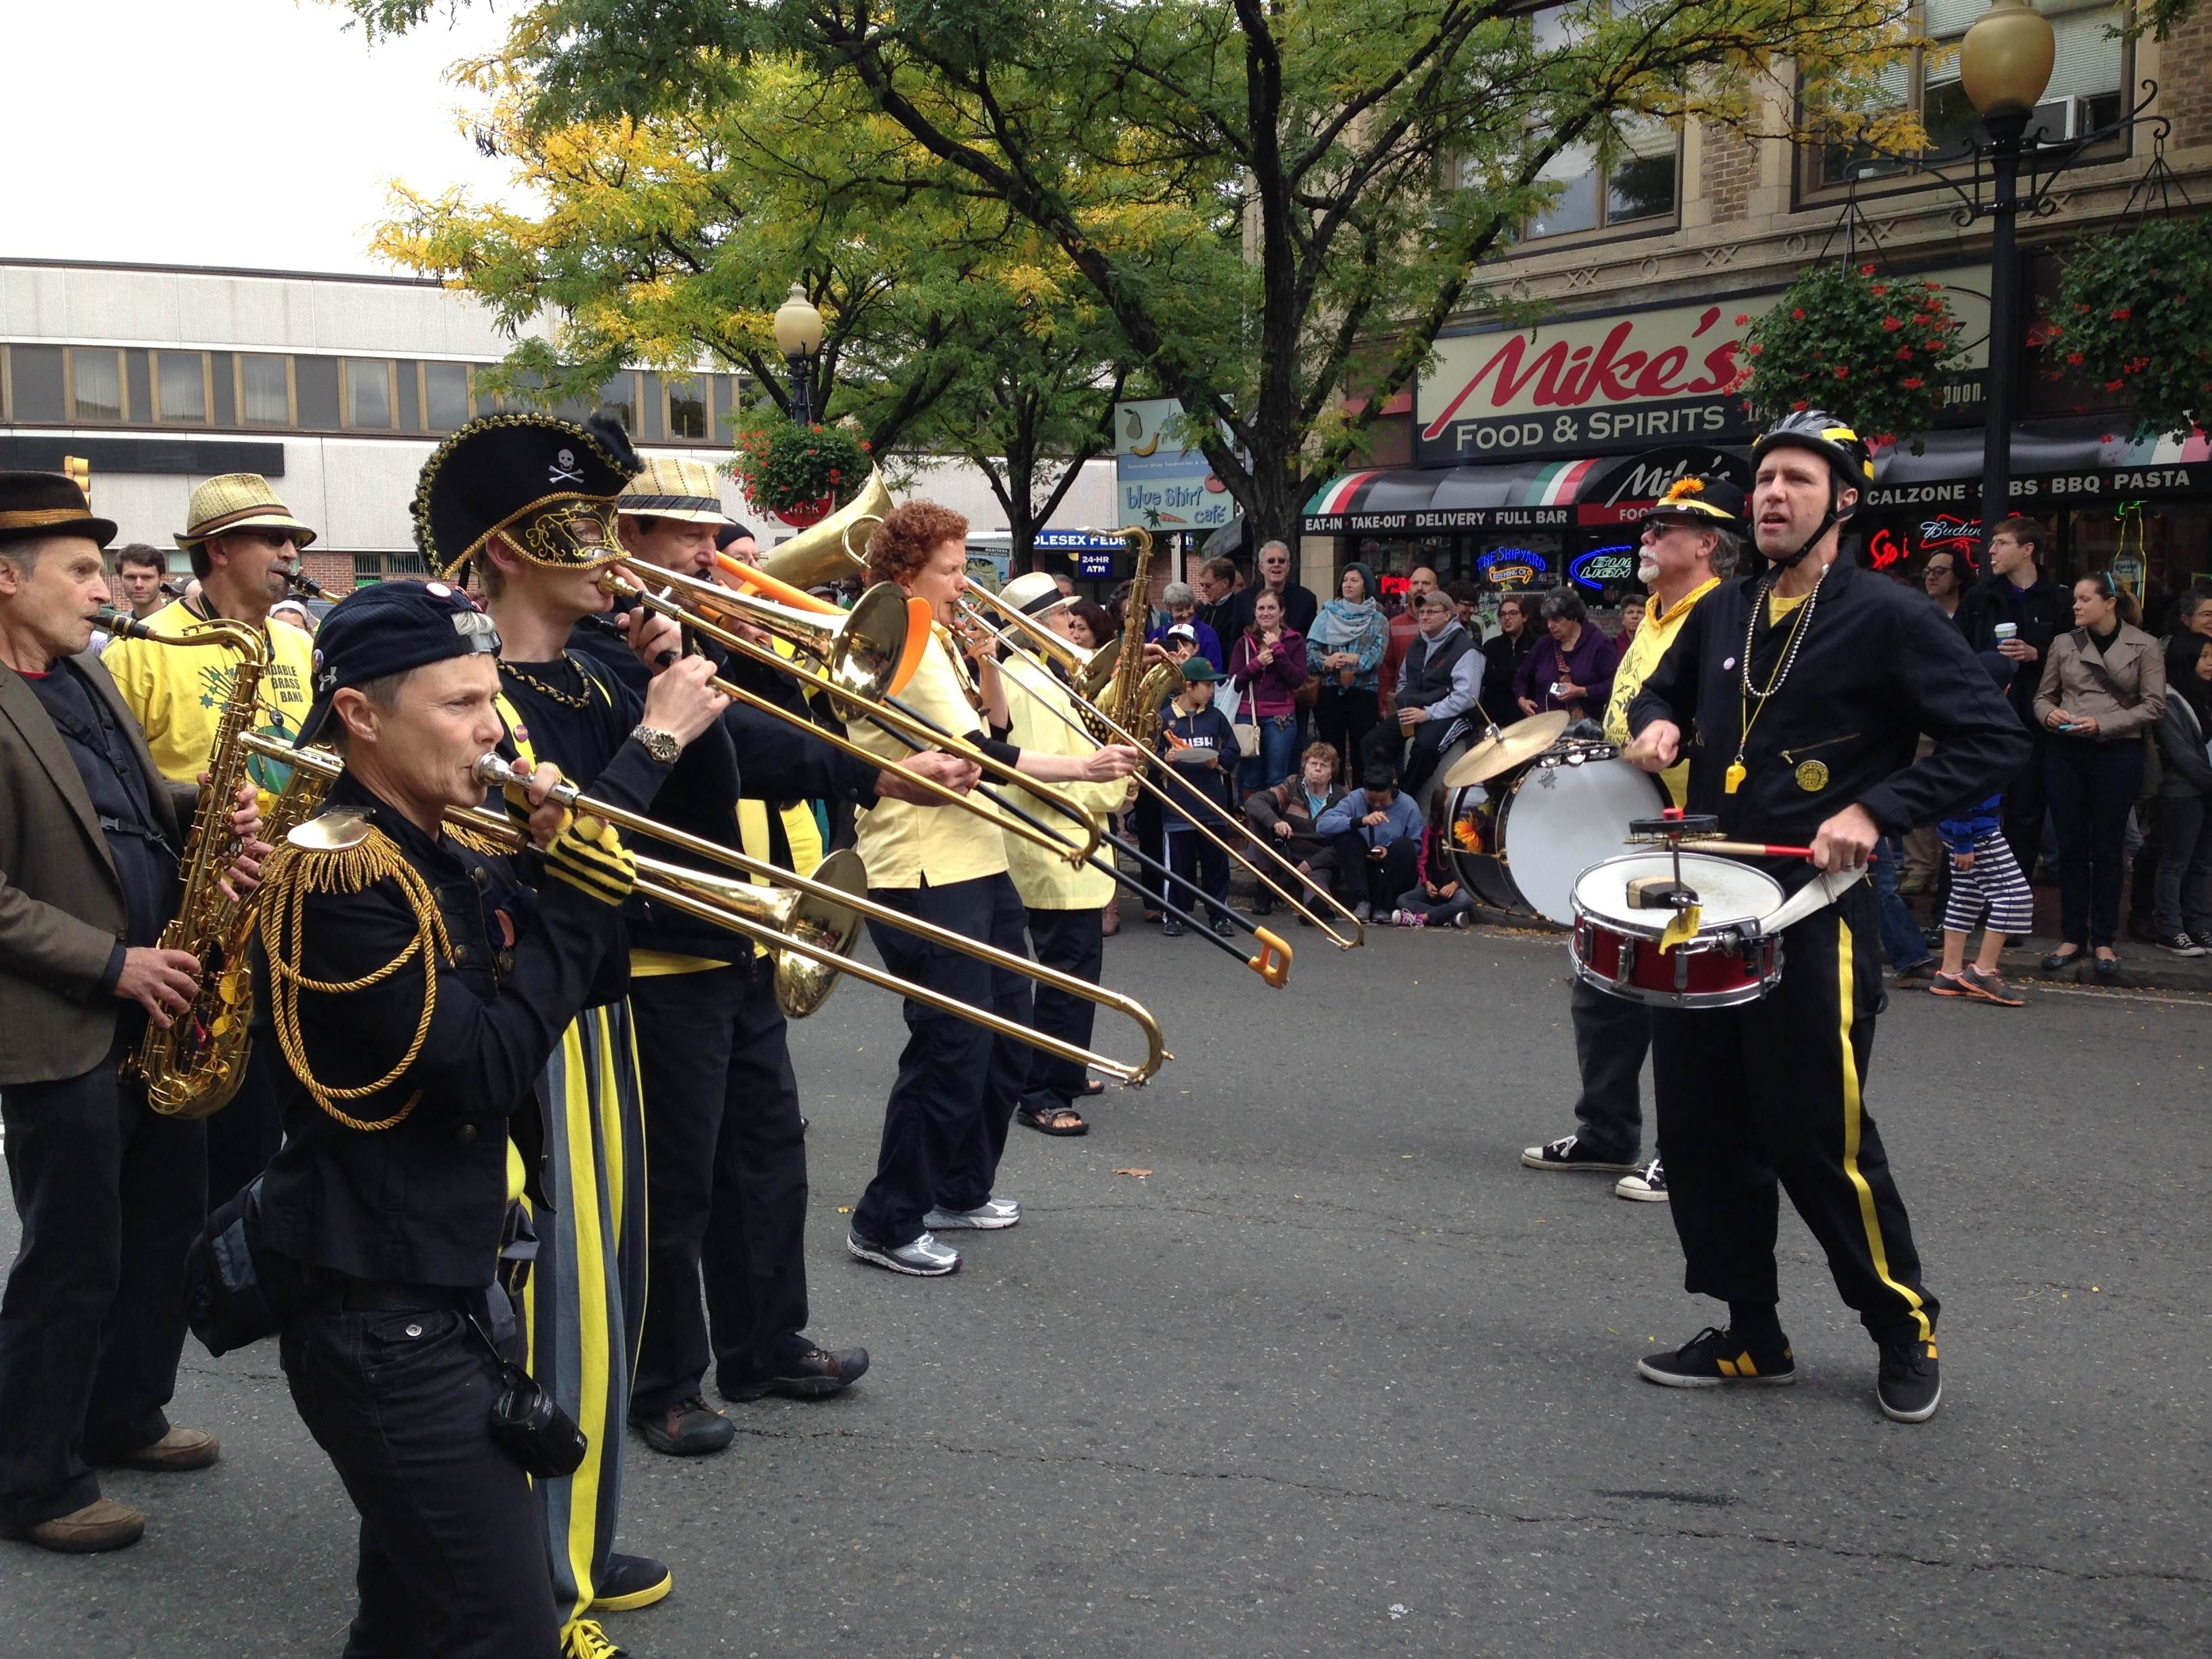 The EBB marching in a parade at HONK!